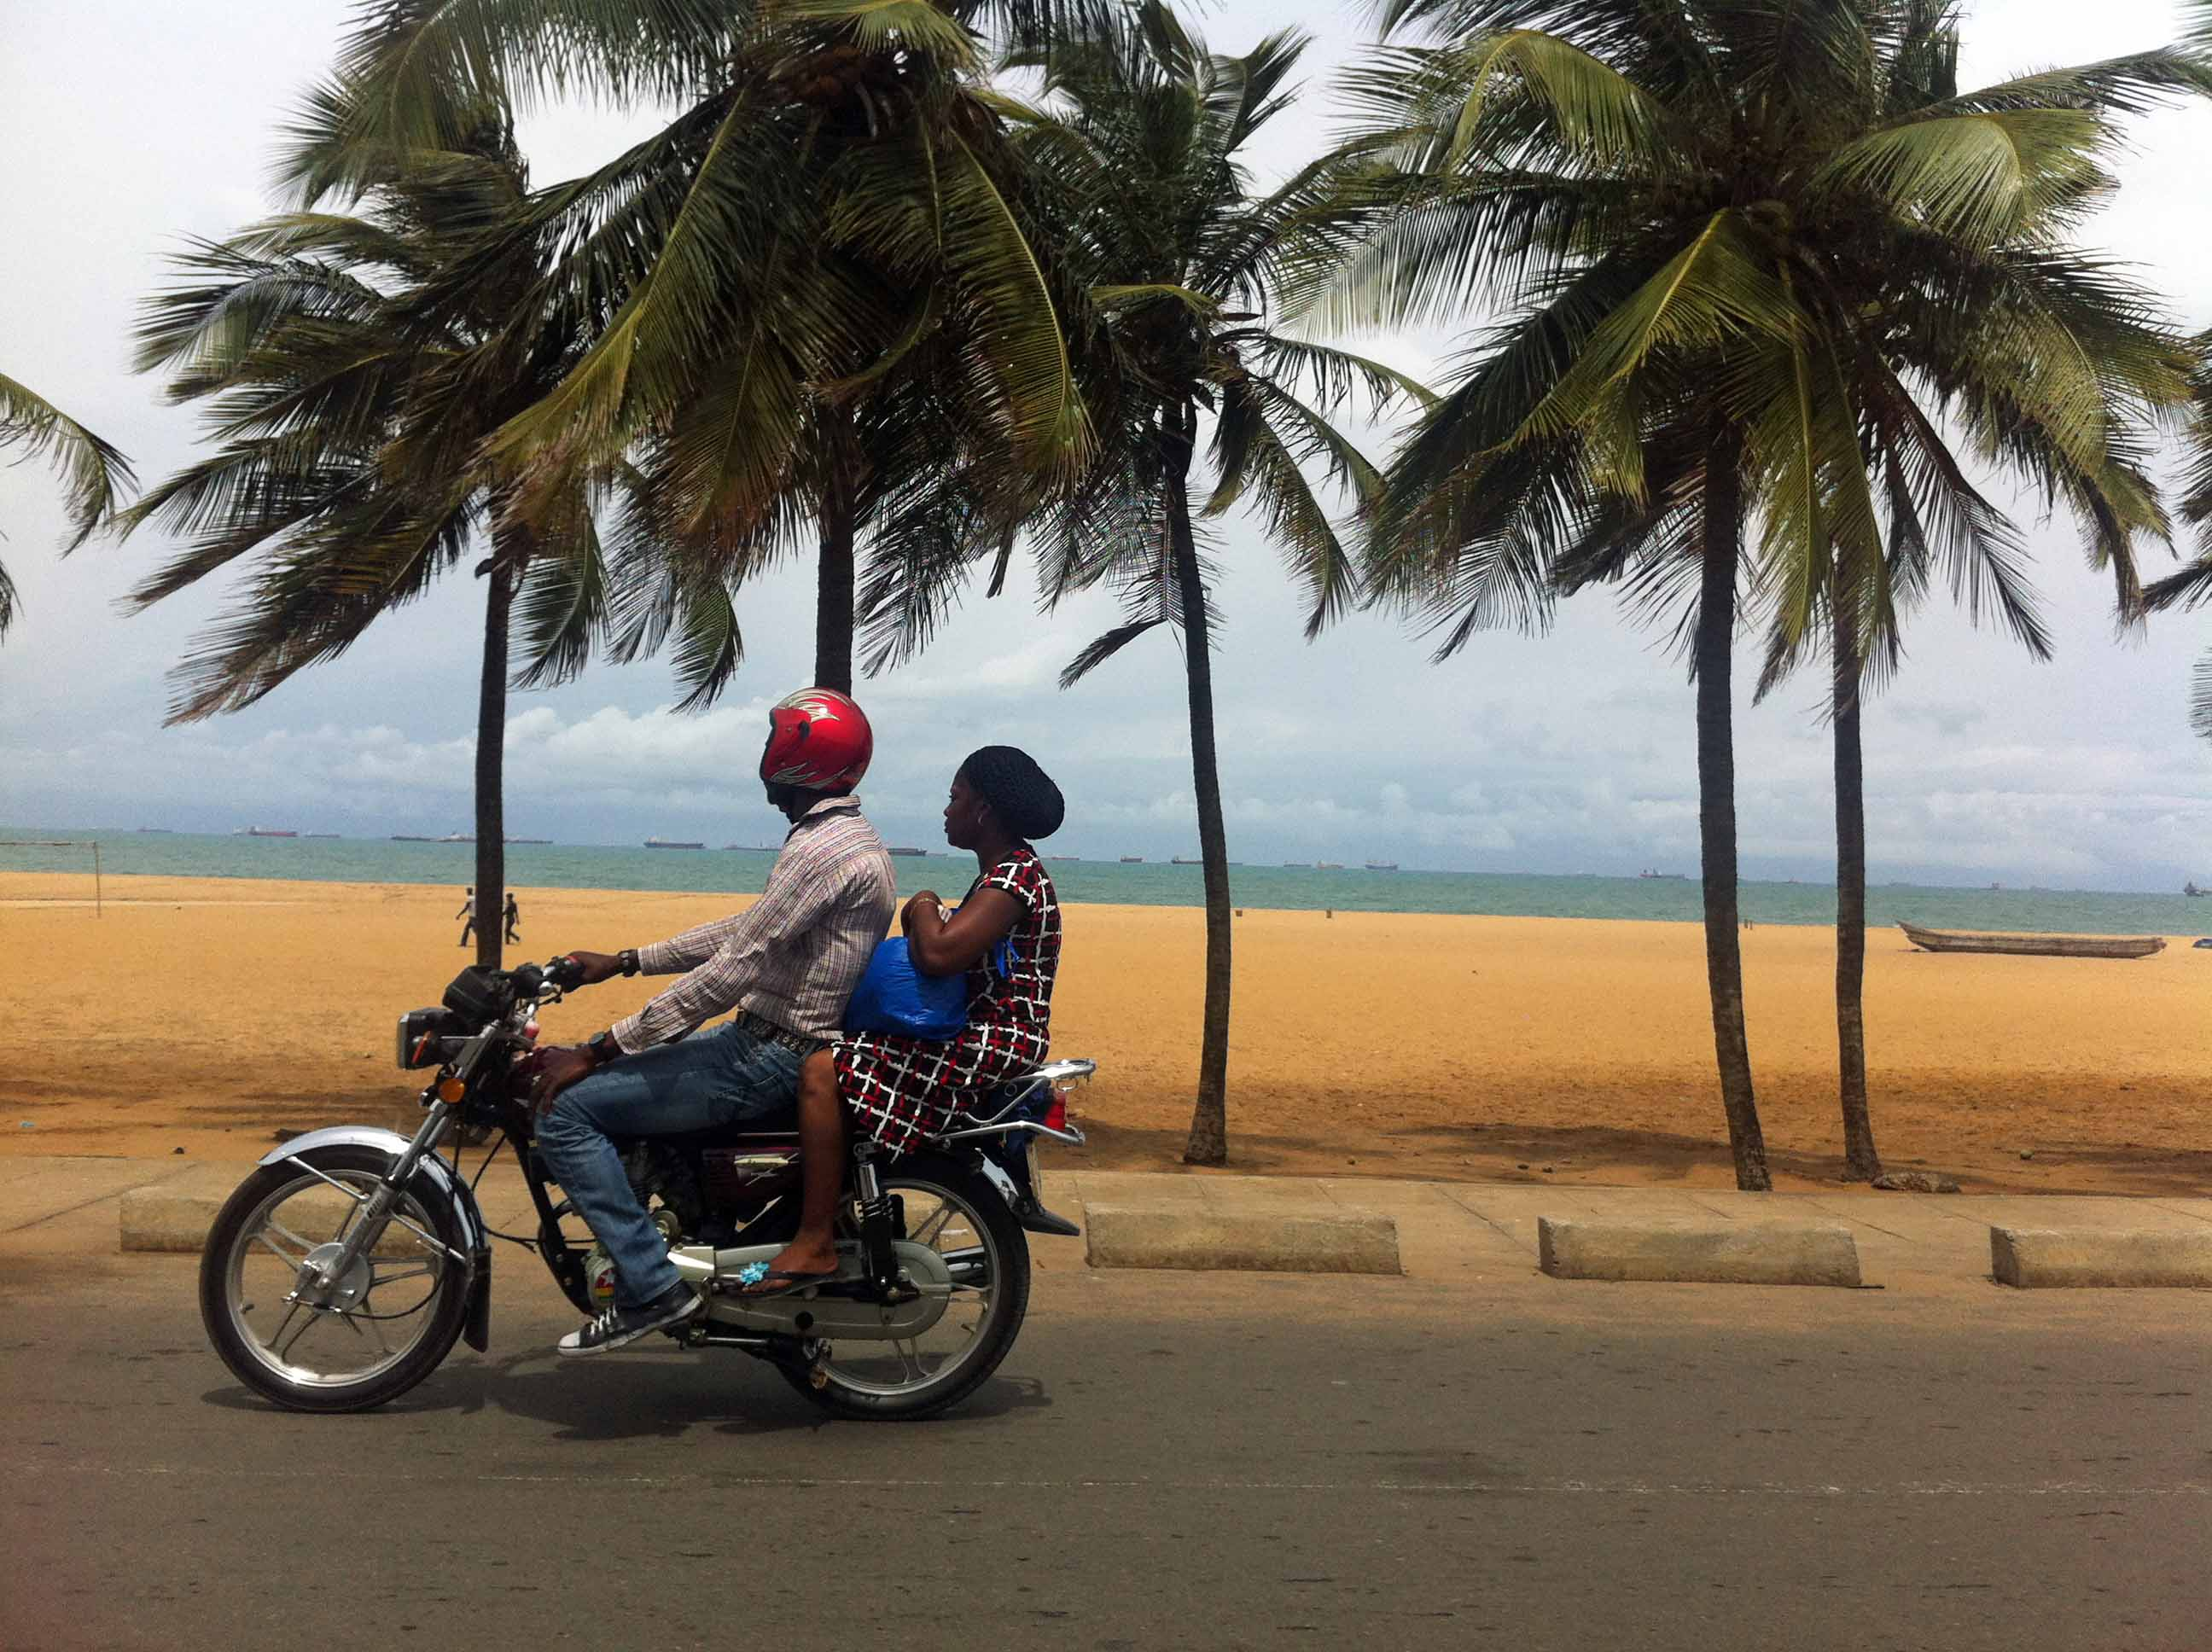 Motorcycling in Lome Togo